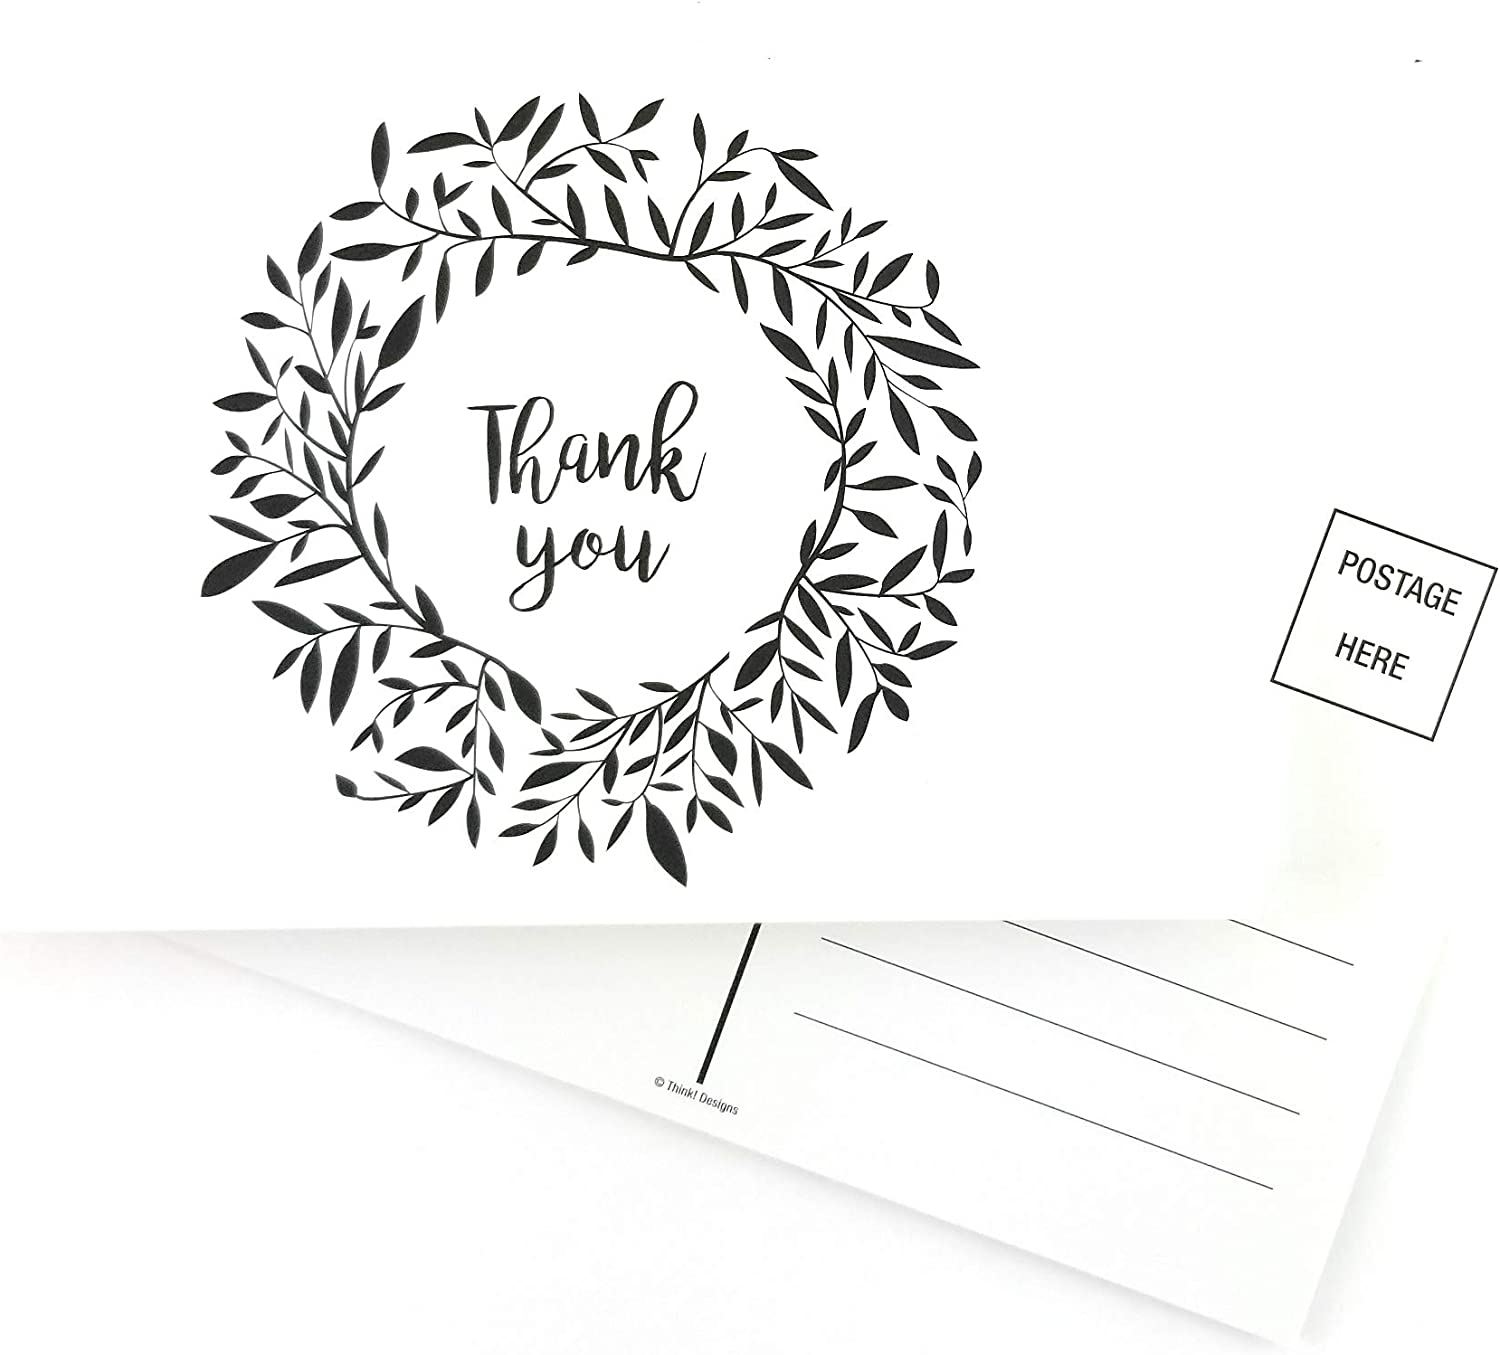 Chicago Mall Think Designs Thank You Postcards Style Greeting N Blank - Fees free!! Back